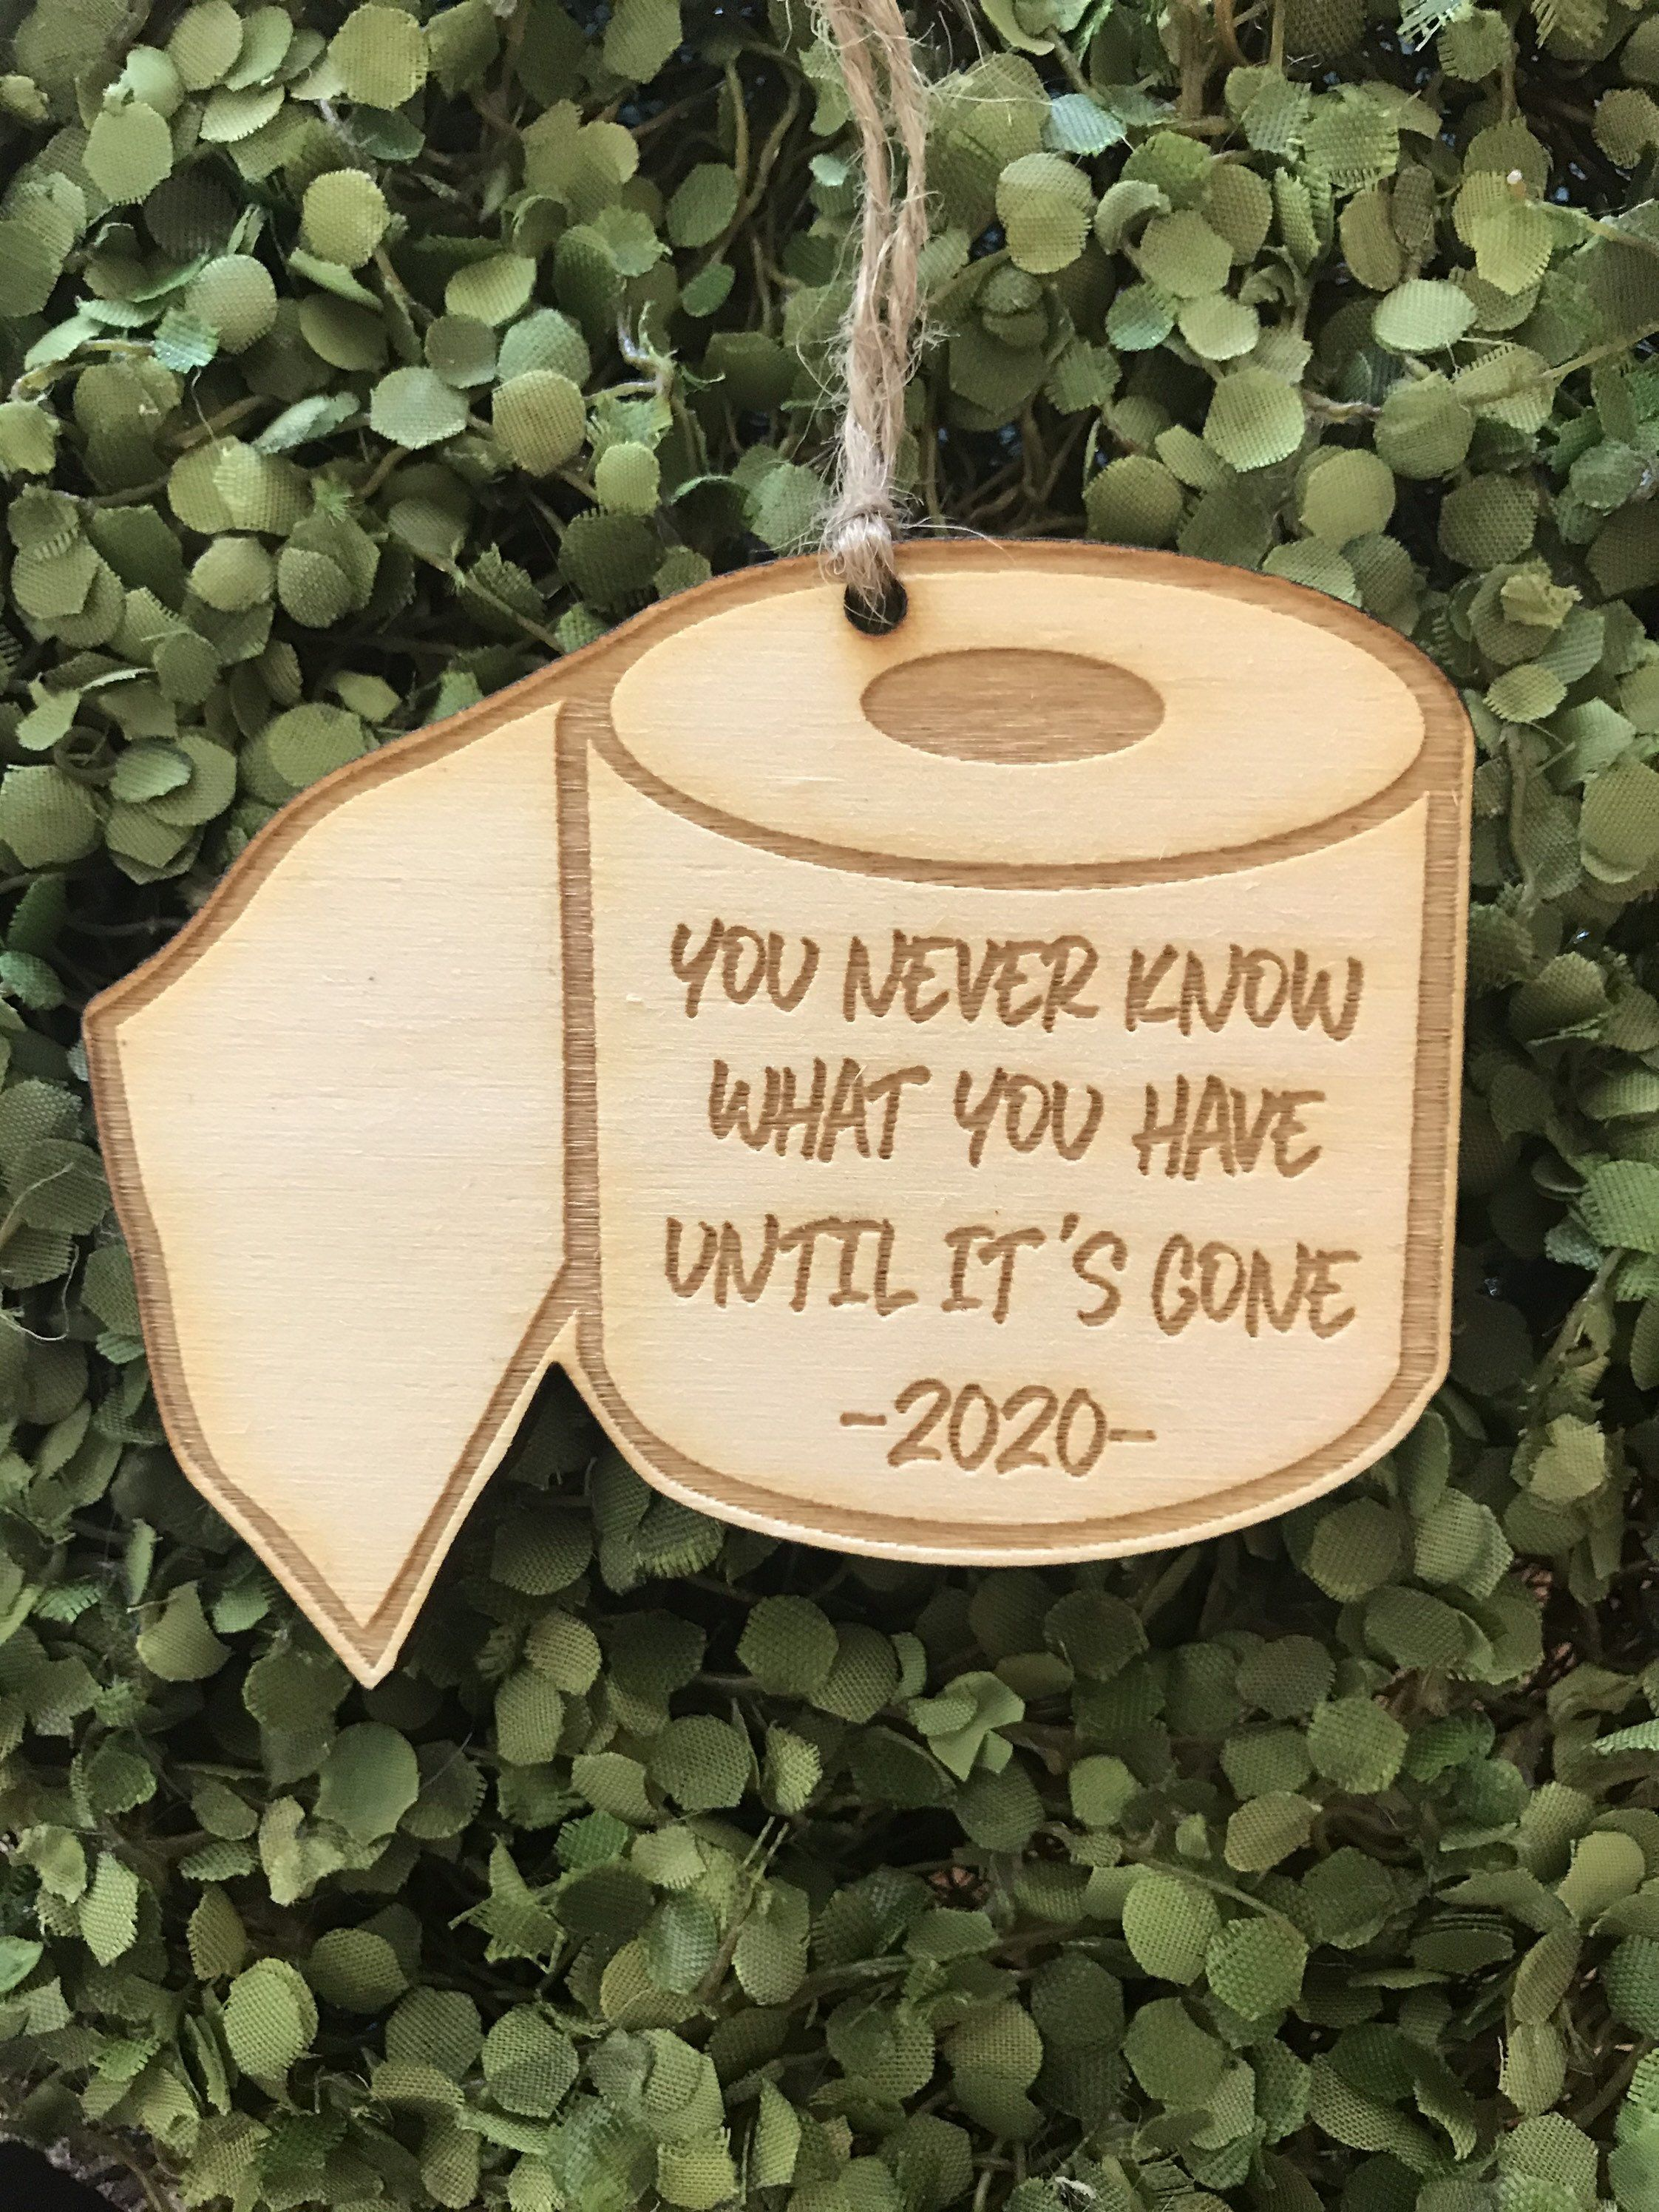 2020 Toilet Paper Tag/Ornament/Car Charm You never know